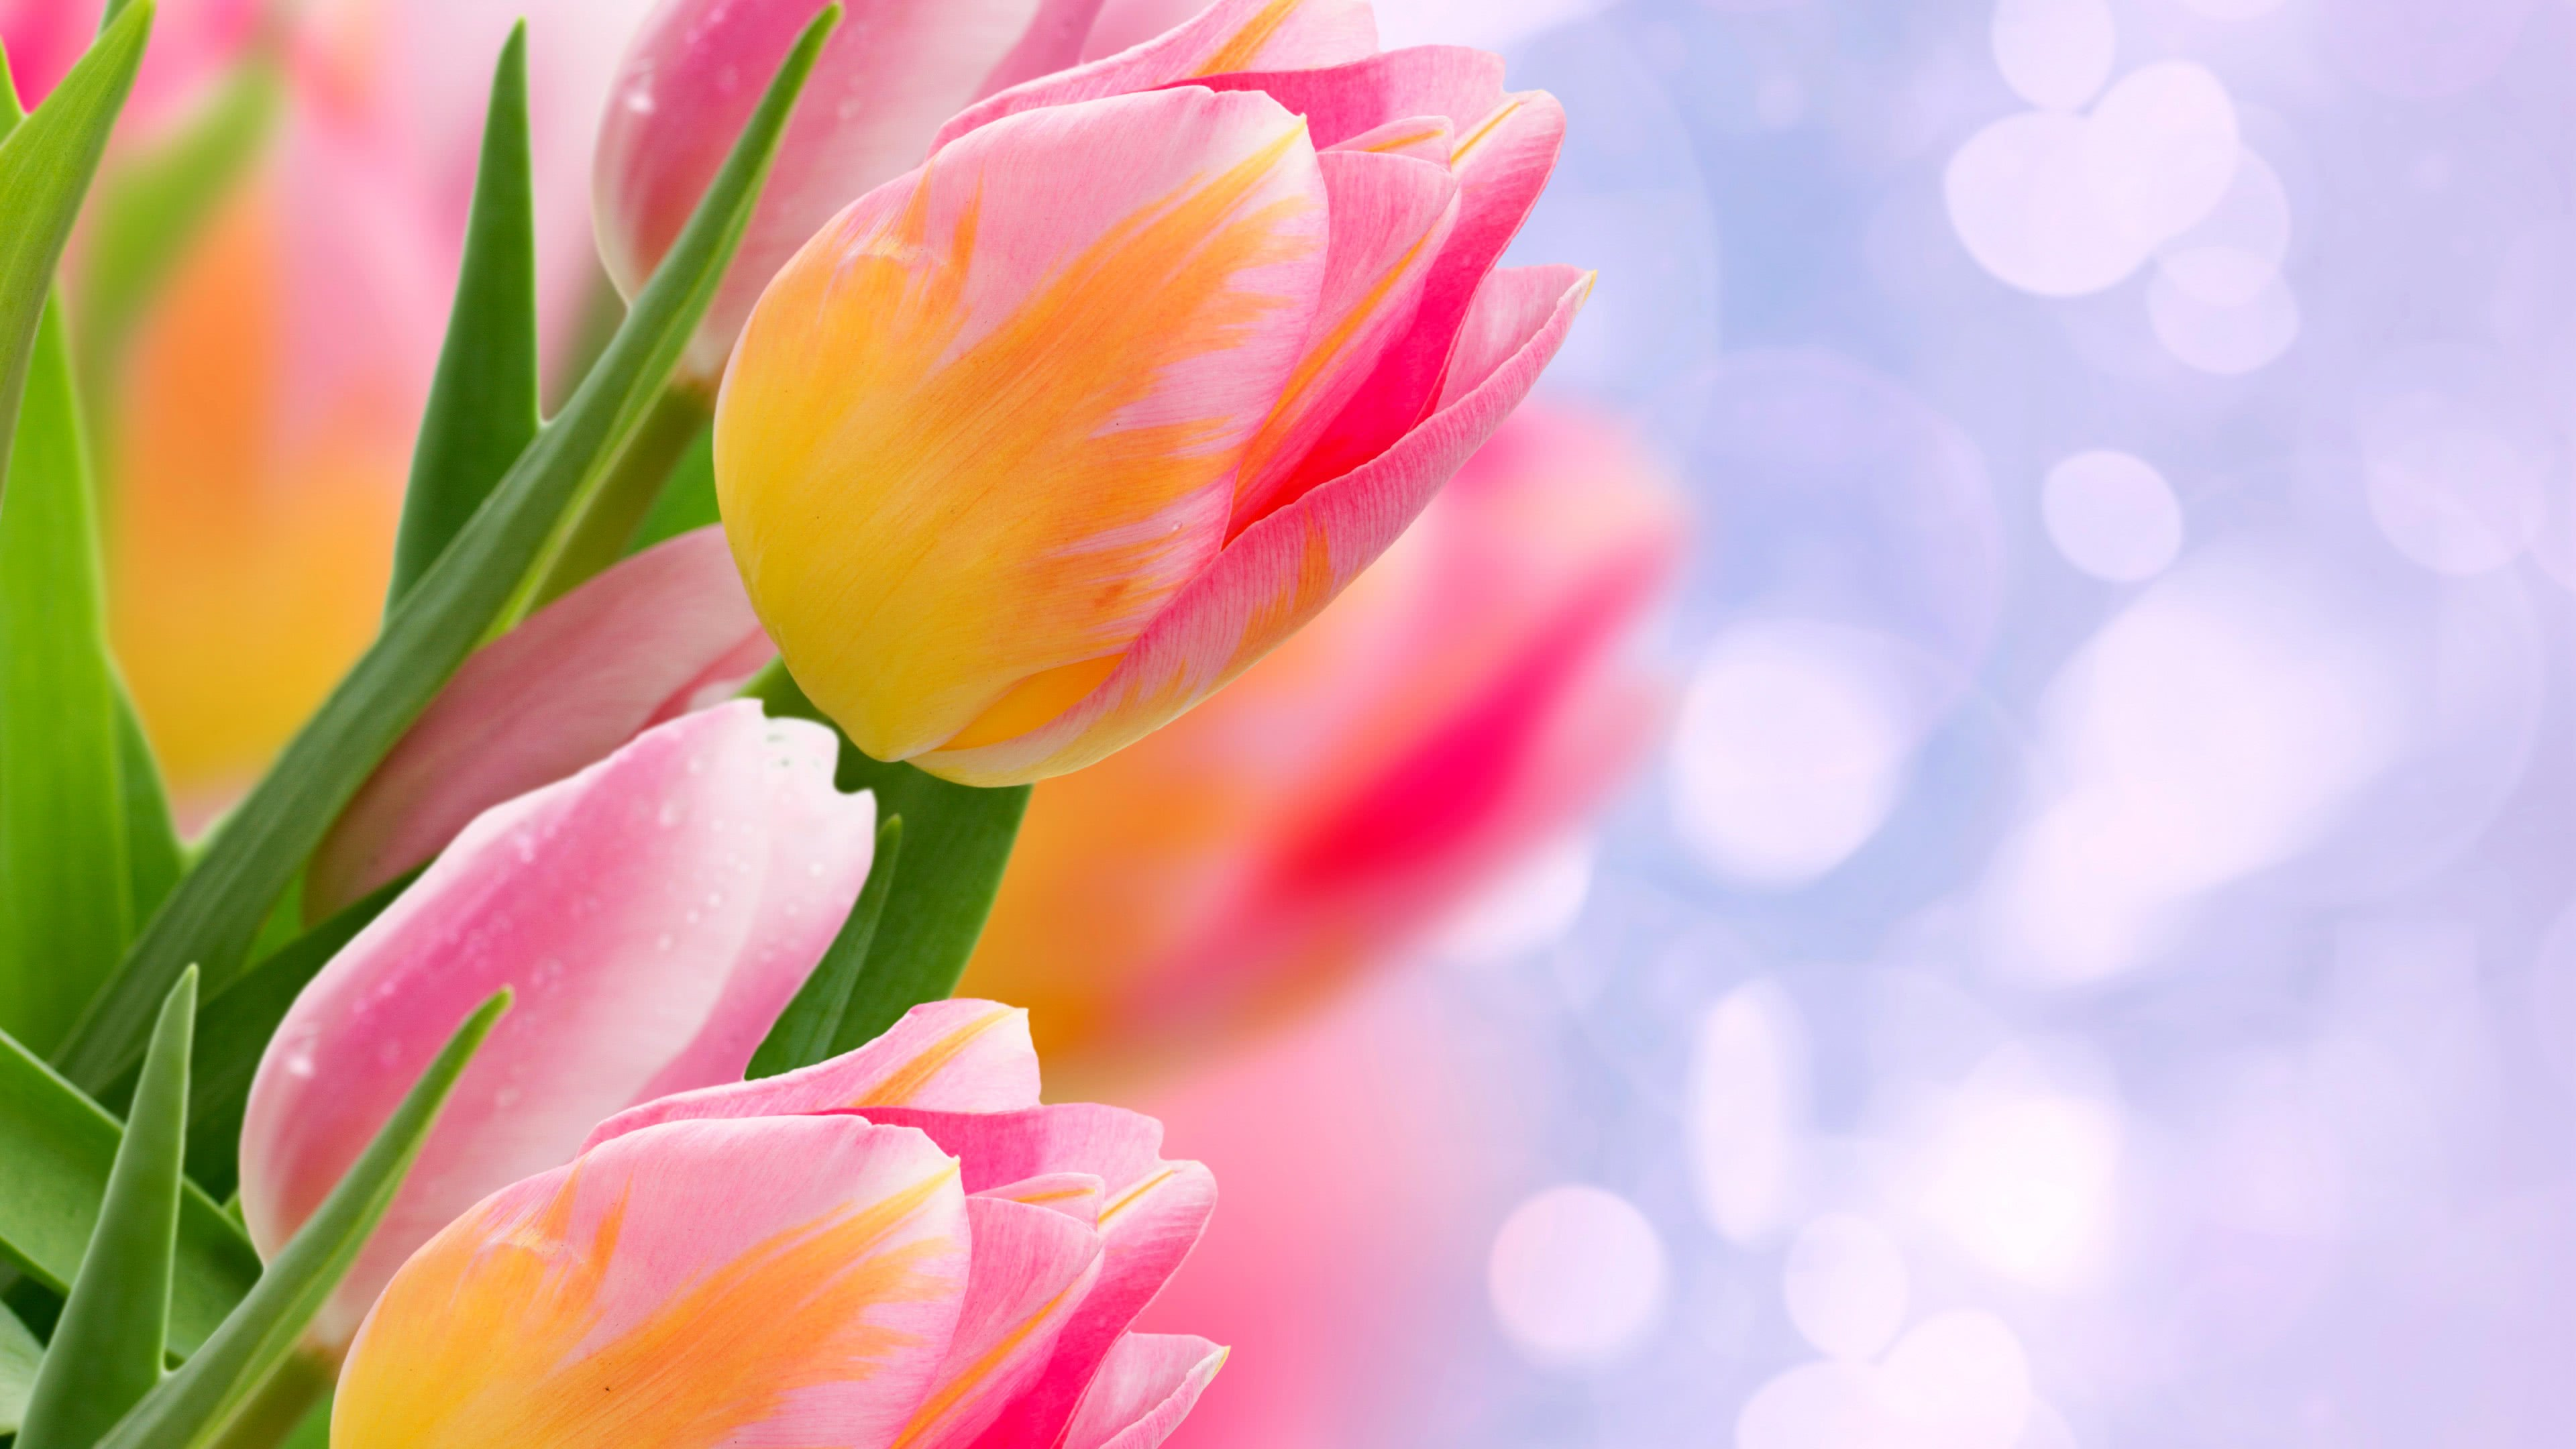 tulips pink and yellow uhd 4k wallpaper